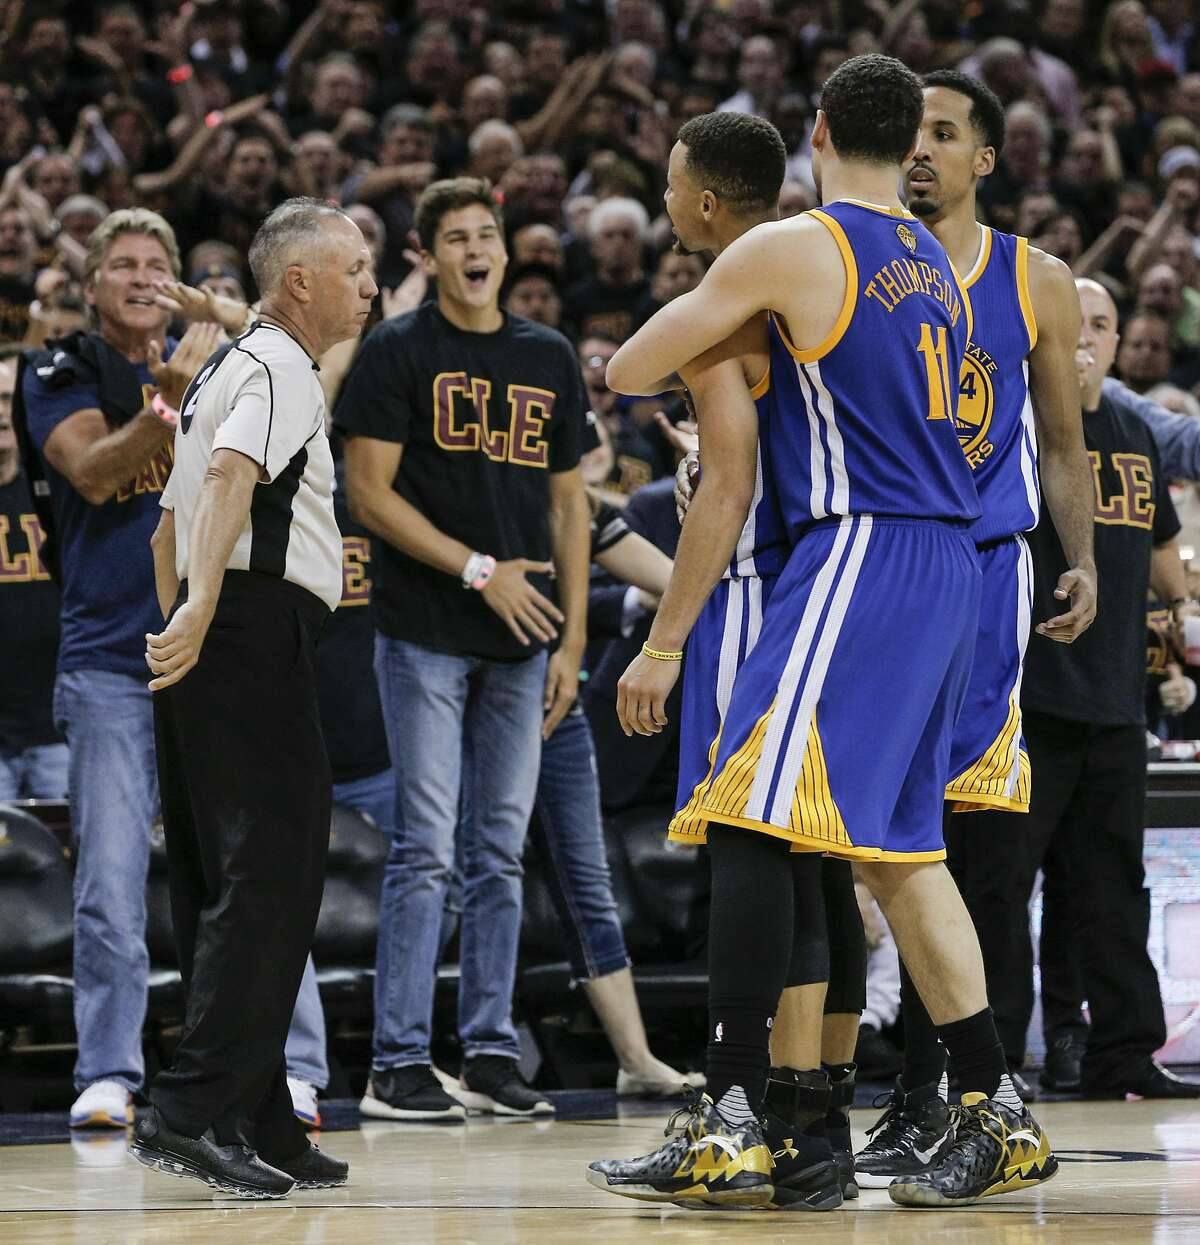 Golden State Warriors' Stephen Curry is held back by teammates Shaun Livingston and Klay Thompson as curry argued a call with referee Jason Phillips after being ejected from the game in the fourth quarter during Game 6 of the NBA Finals at The Quicken Loans Arena on Thursday, June 16, 2016 in Cleveland, Ohio.